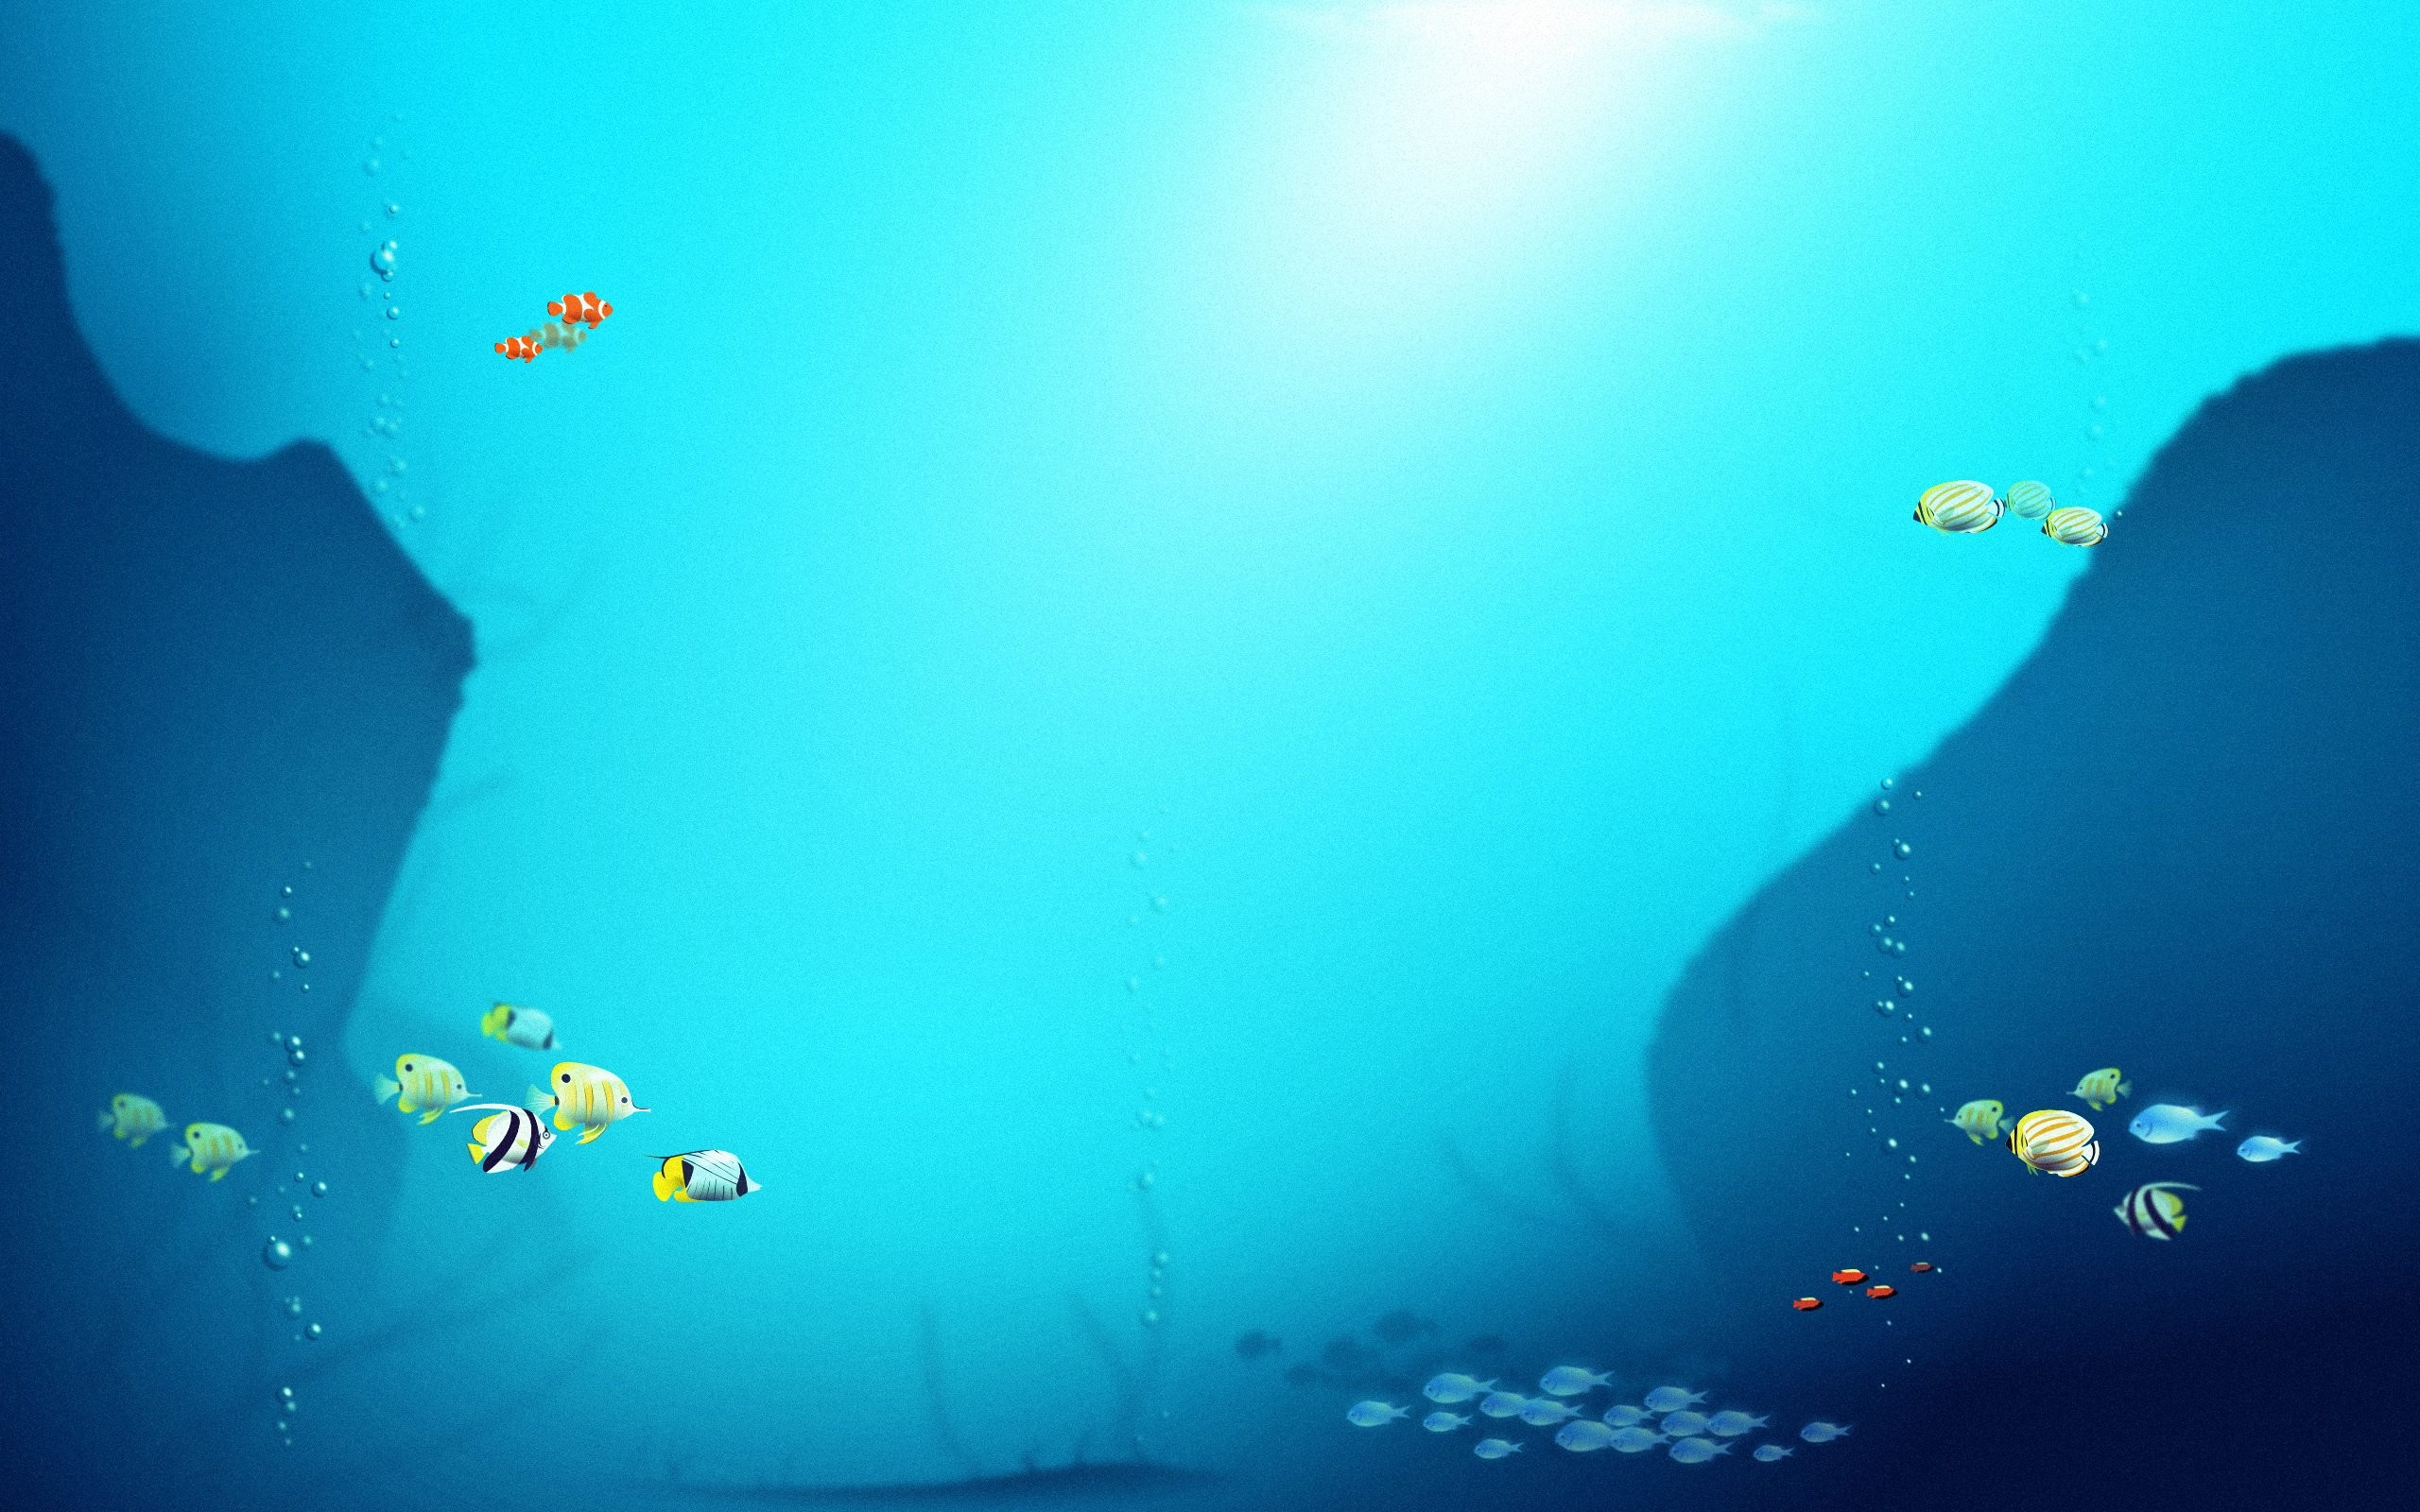 Fish Background - WallpaperSafari